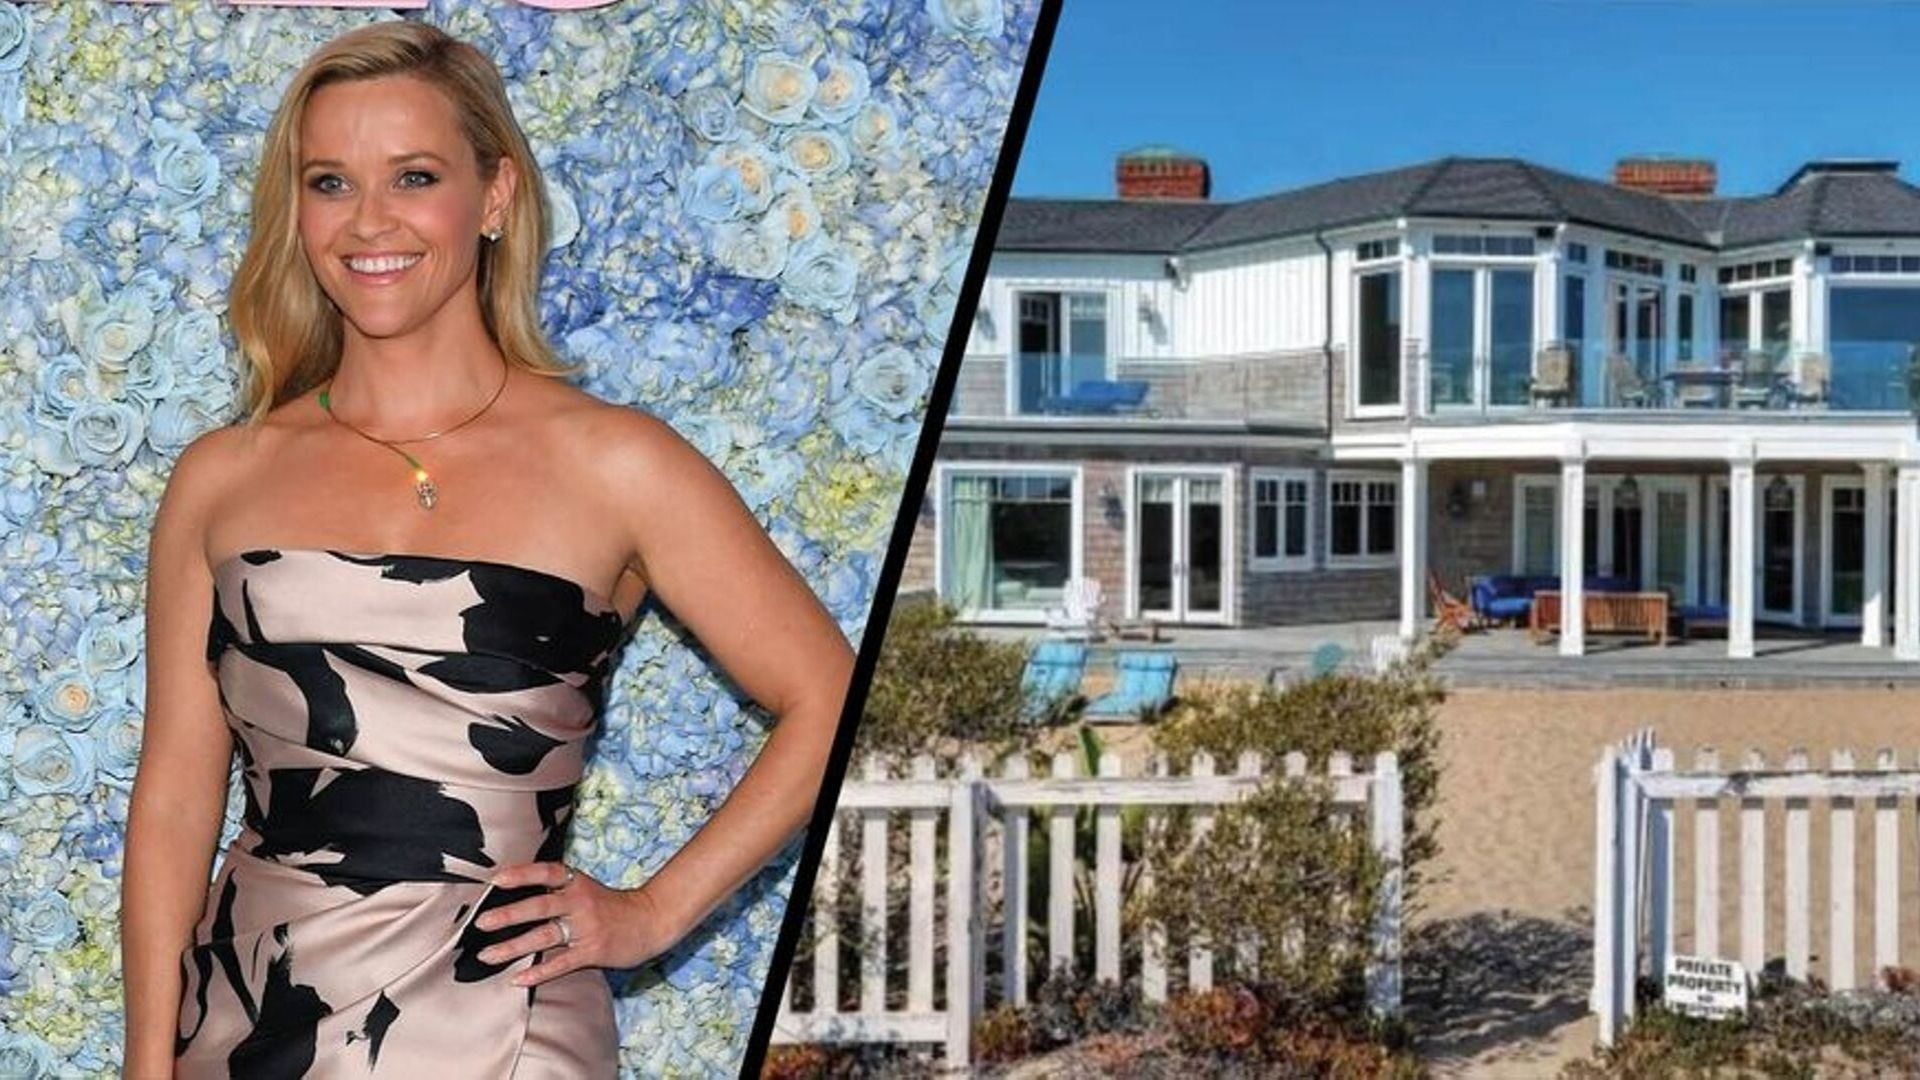 Reese Witherspoon's 'Big Little Lies' Malibu Mansion Is Available To Rent